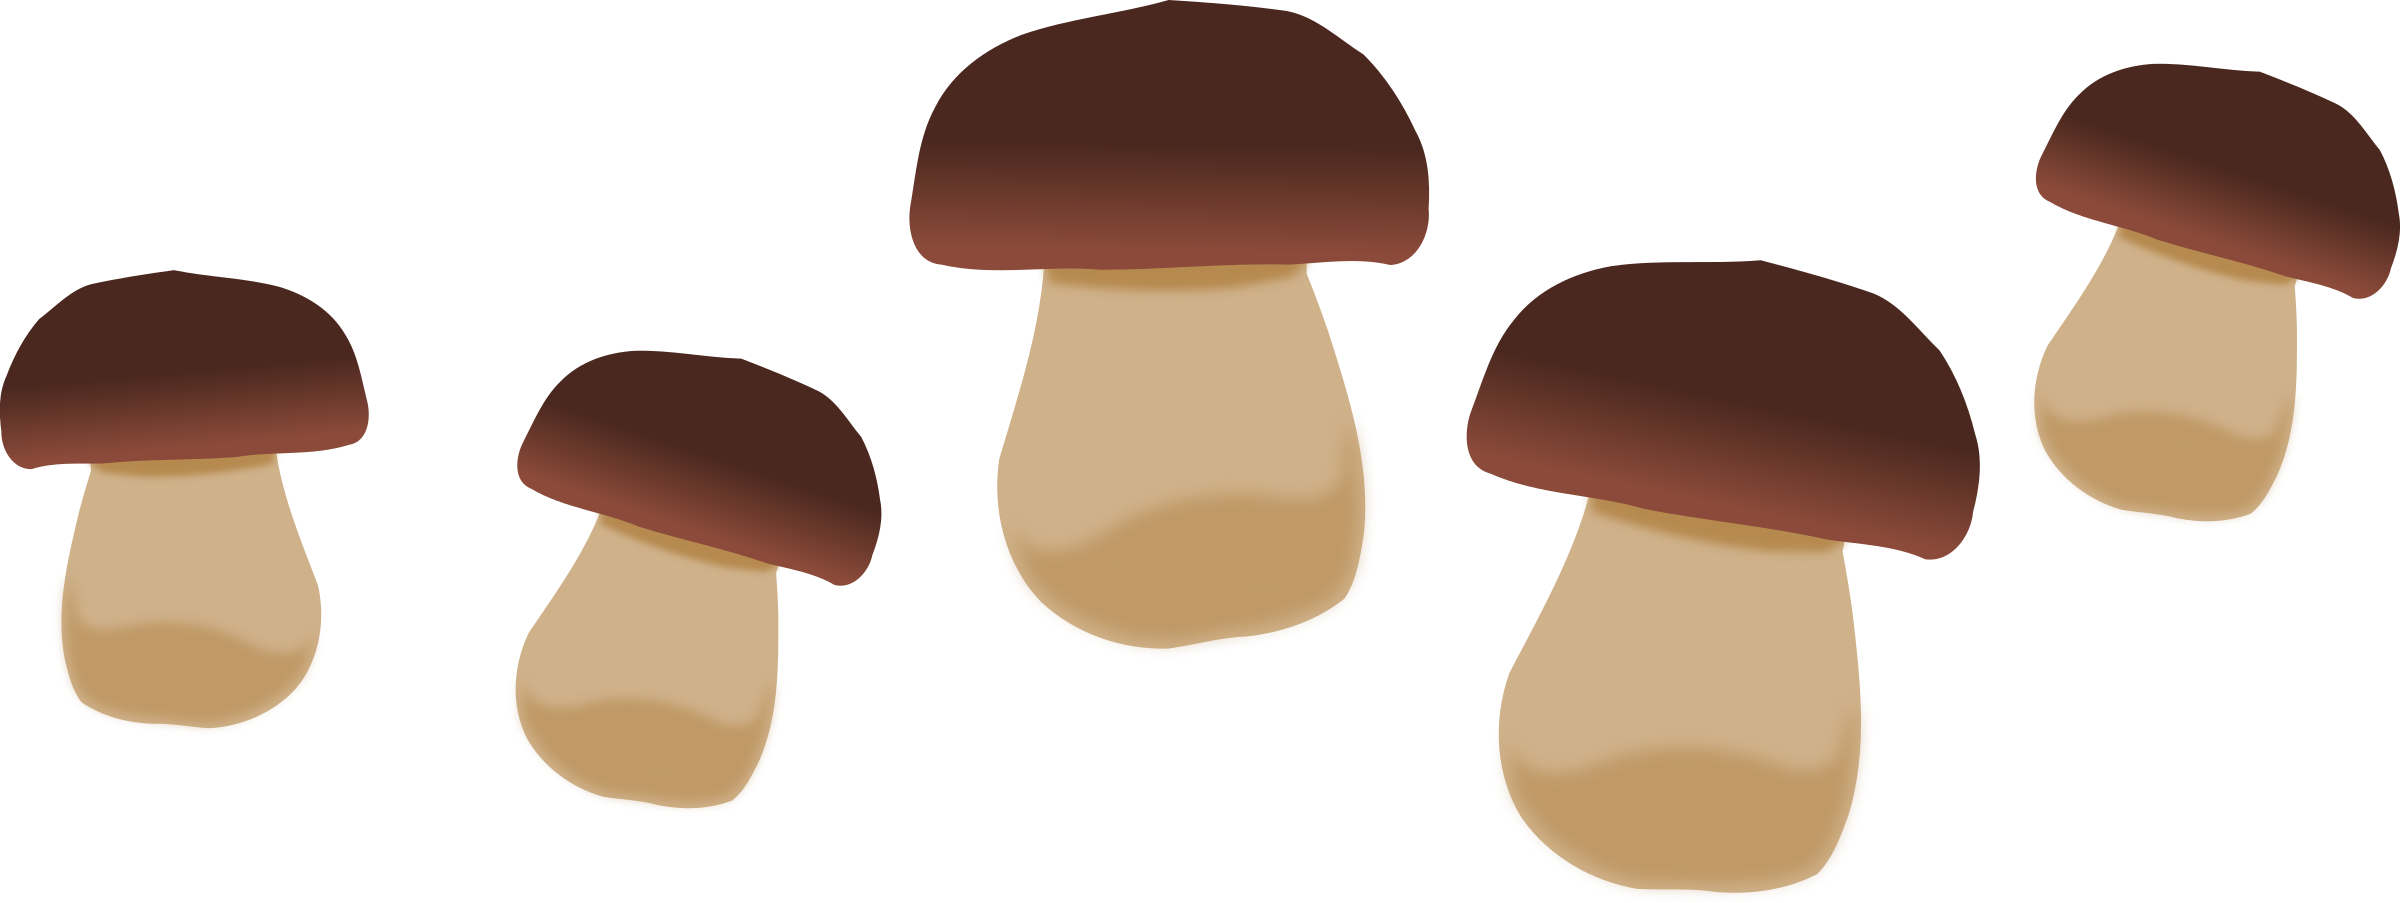 clip art free library Big image png. Mushrooms clipart